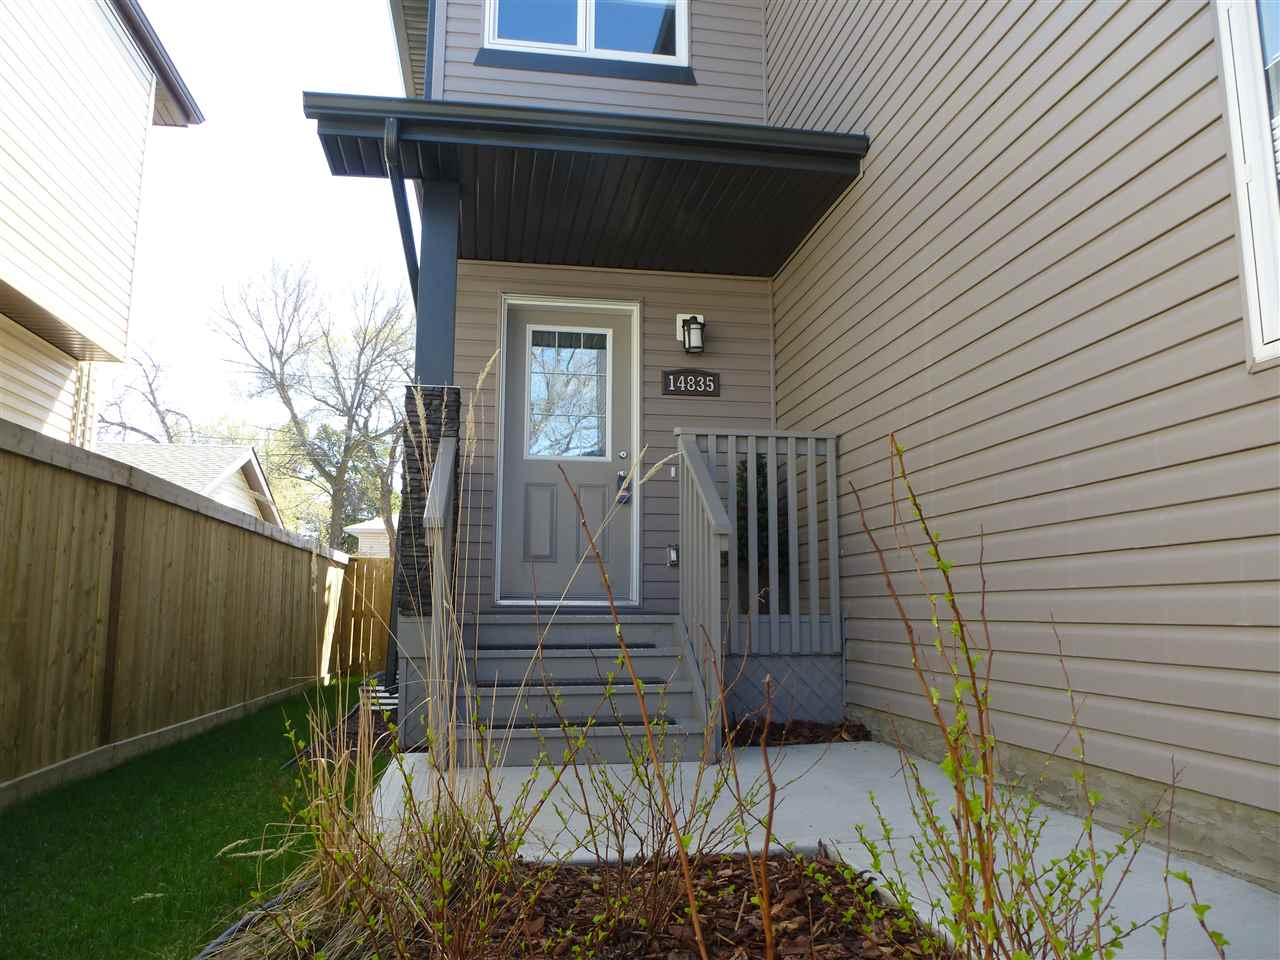 Photo 2: 14835 103 Avenue in Edmonton: Zone 21 House Half Duplex for sale : MLS(r) # E4057701